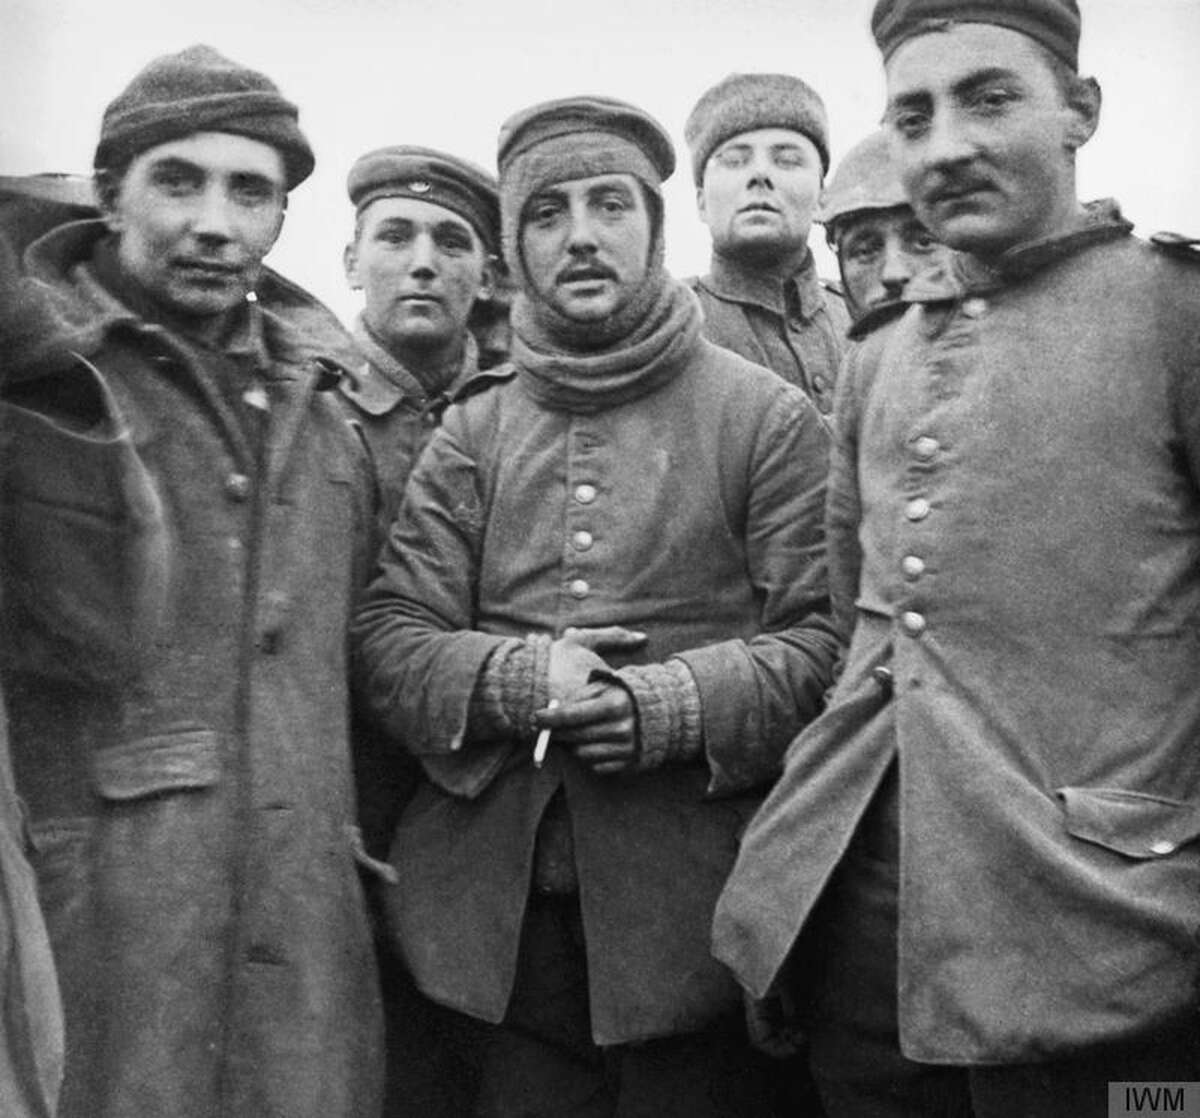 In this image provided by the Imperial War Museum, World War I German and British soldiers stand together on the battlefield near Ploegsteert, Belgium during Dec. 1914. Soldiers who had been killing each other by the tens of thousands for months climbed out of their soggy trenches to seek a shred of humanity amid the horrors of World War I. Hands reached out across the divide and in Flanders Fields a century ago, a spontaneous Christmas truce ever so briefly lifted the human spirit. (AP Photo/IWM, Q11718)